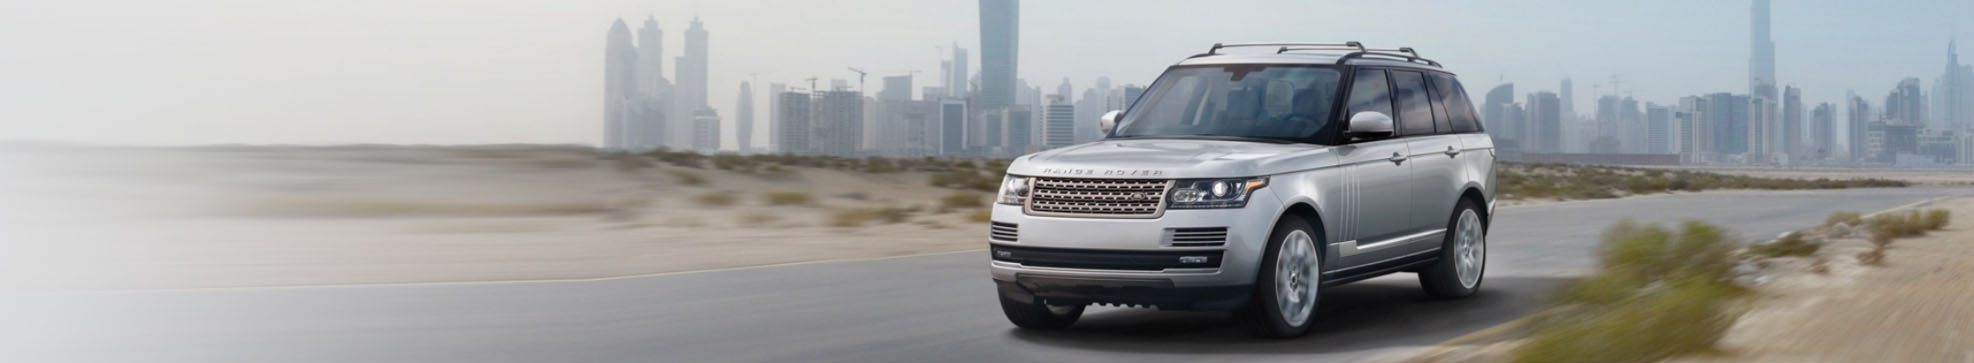 2018 Range Rover Driving on Road